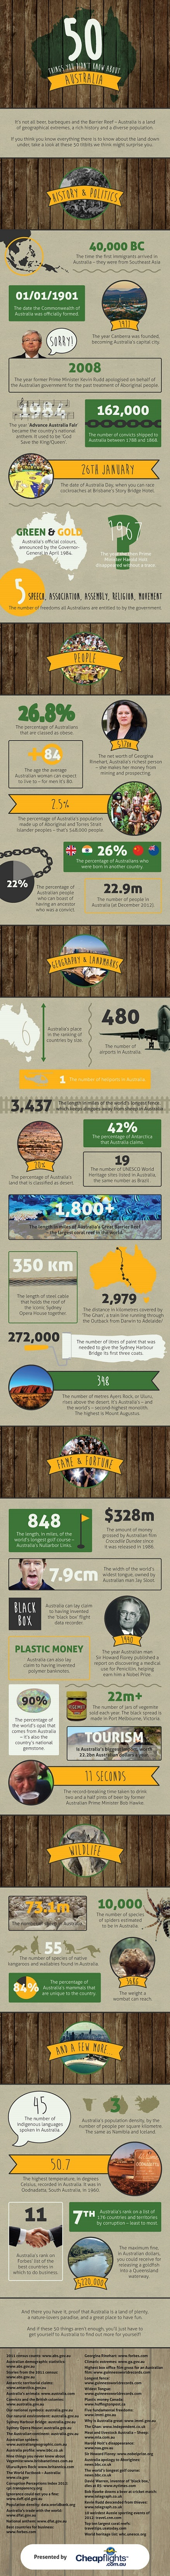 50 Things You Didn't Know About Australia Infograp